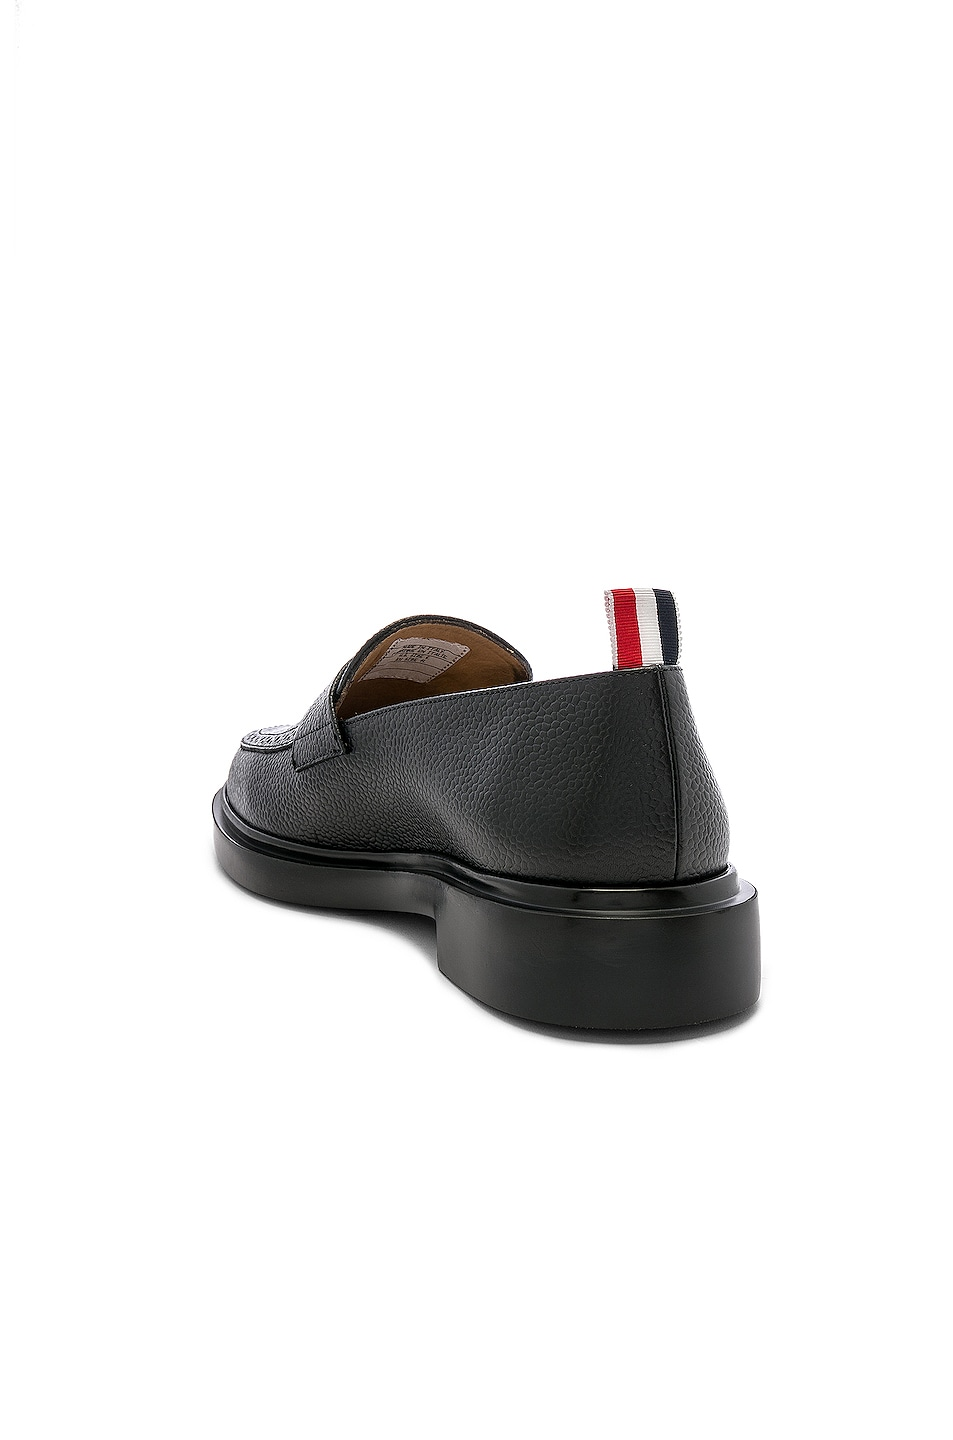 Image 3 of Thom Browne Rubber Sole Loafer in Black